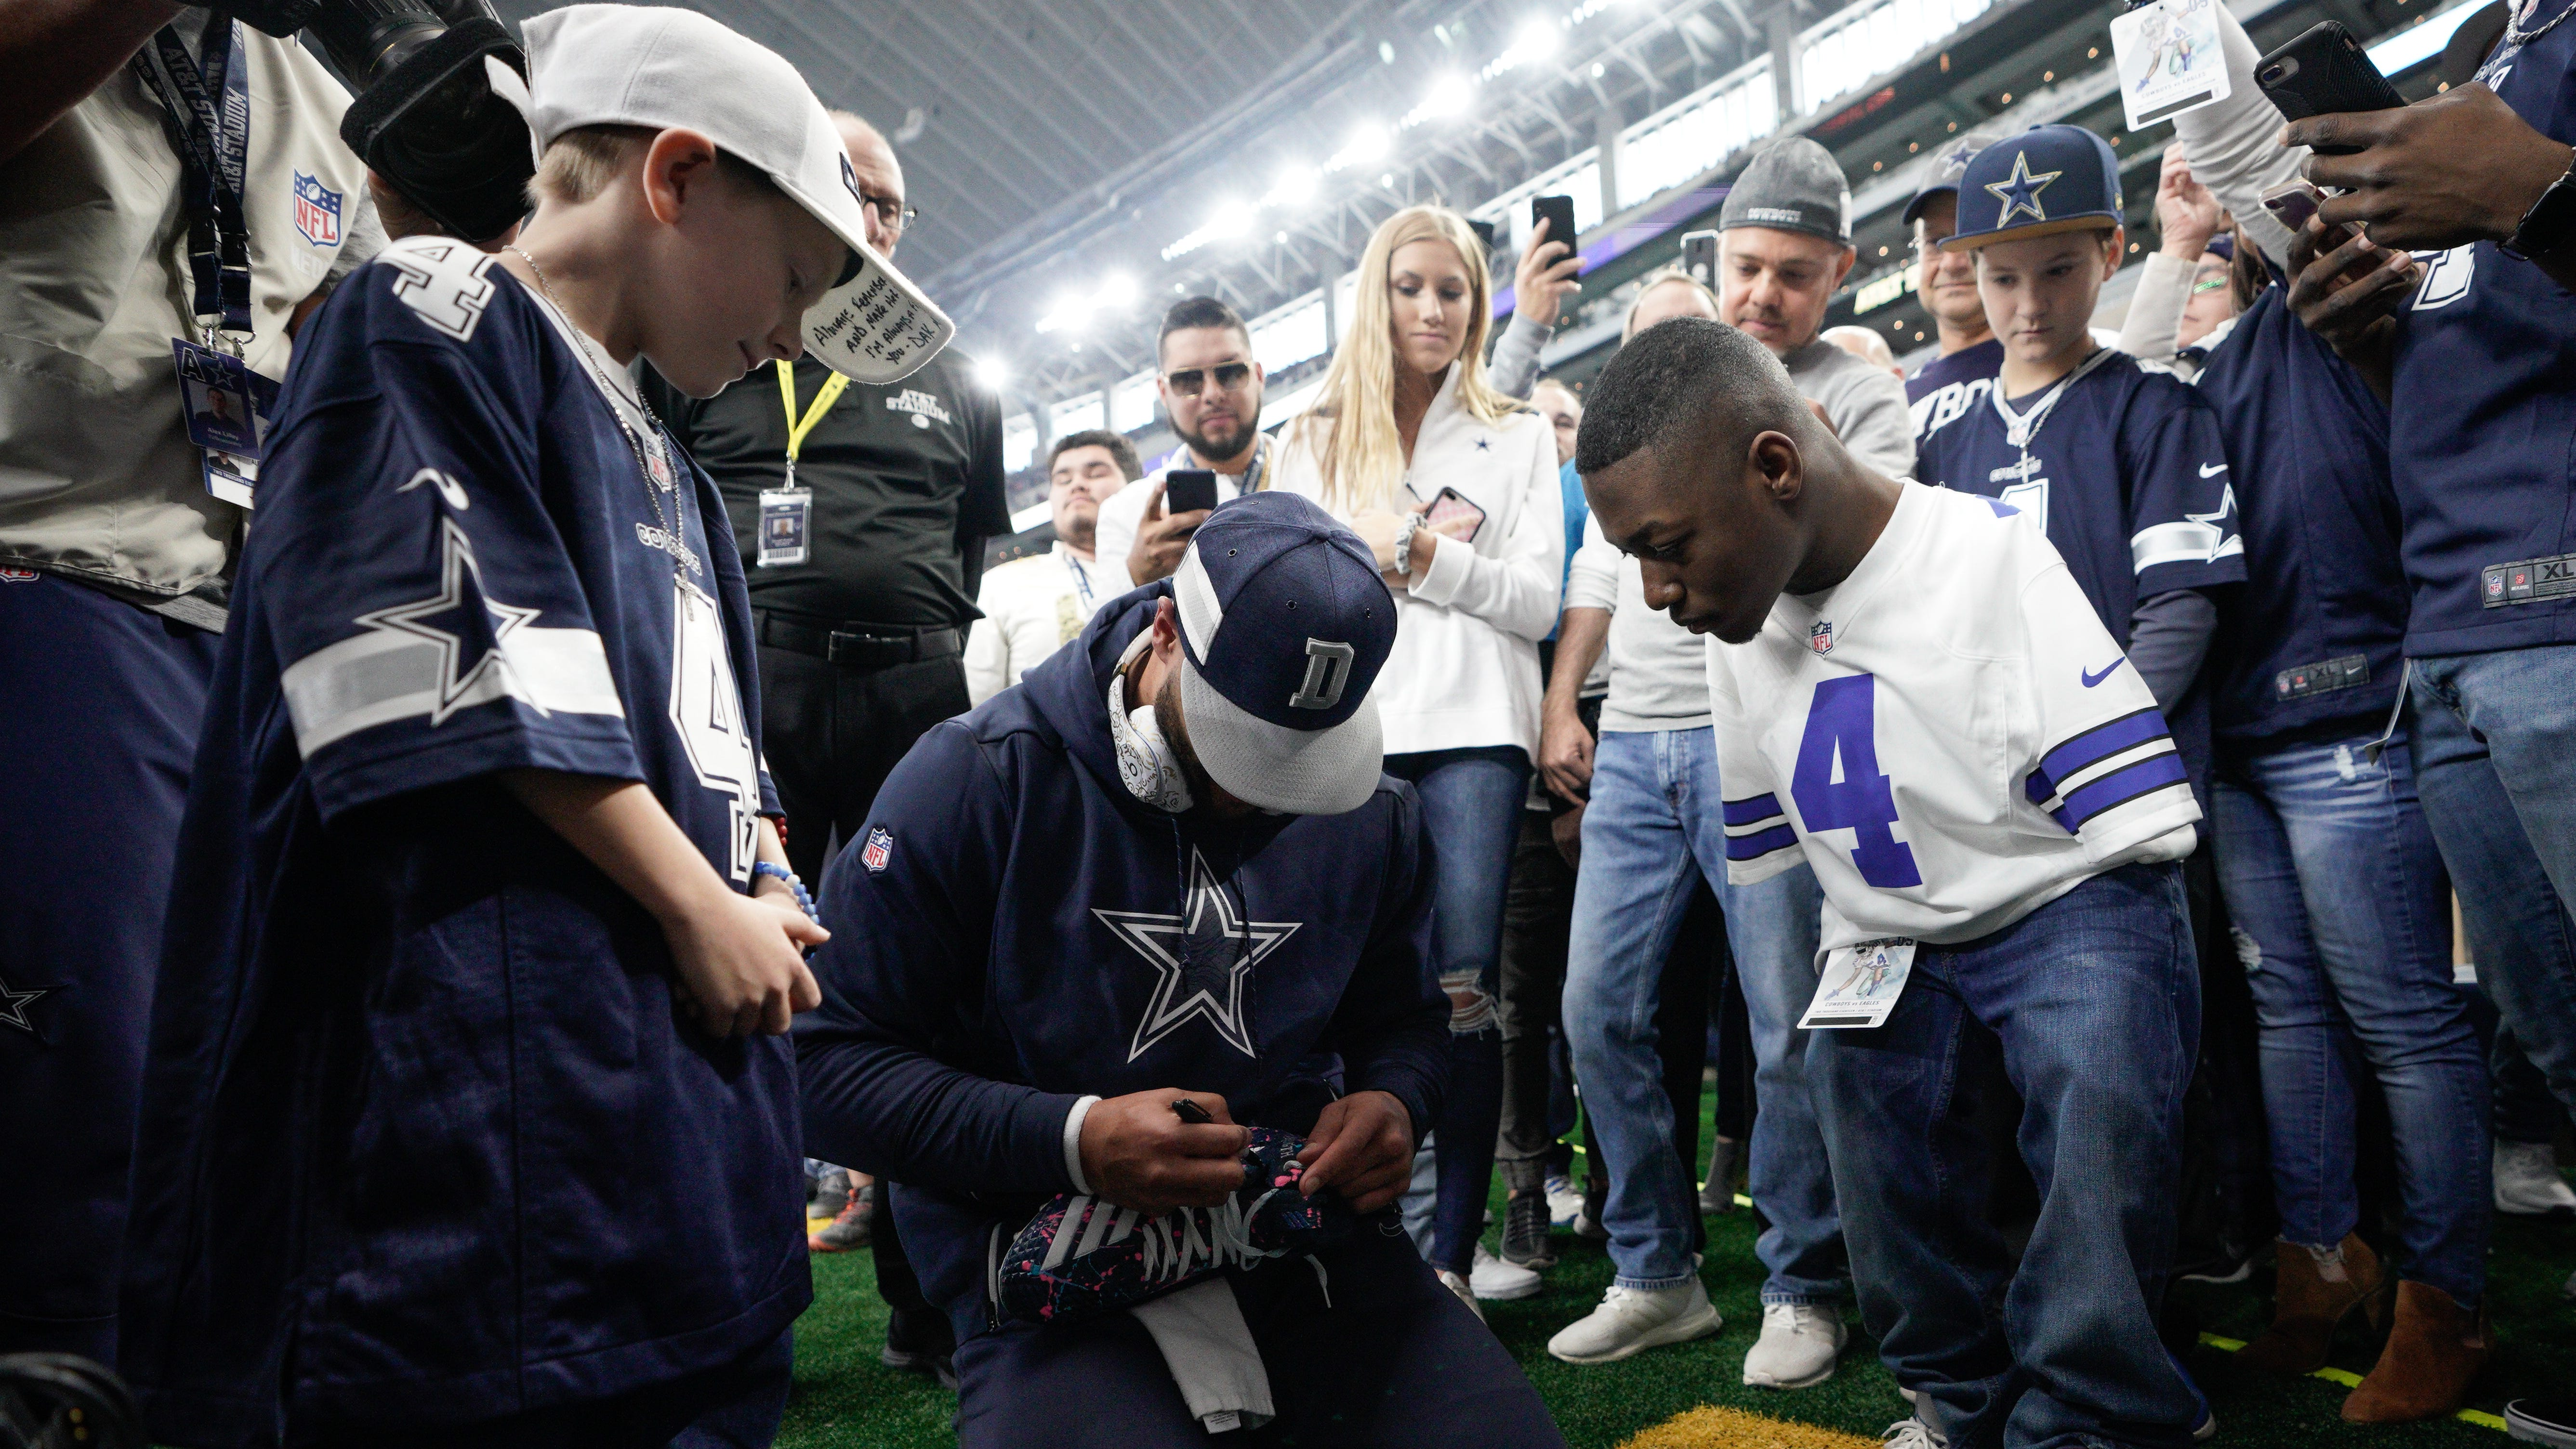 Friends parlay meeting at Haughton football camp, special cleats into emotional reunion, gutsy victory by Dak Prescott and the Dallas Cowboys